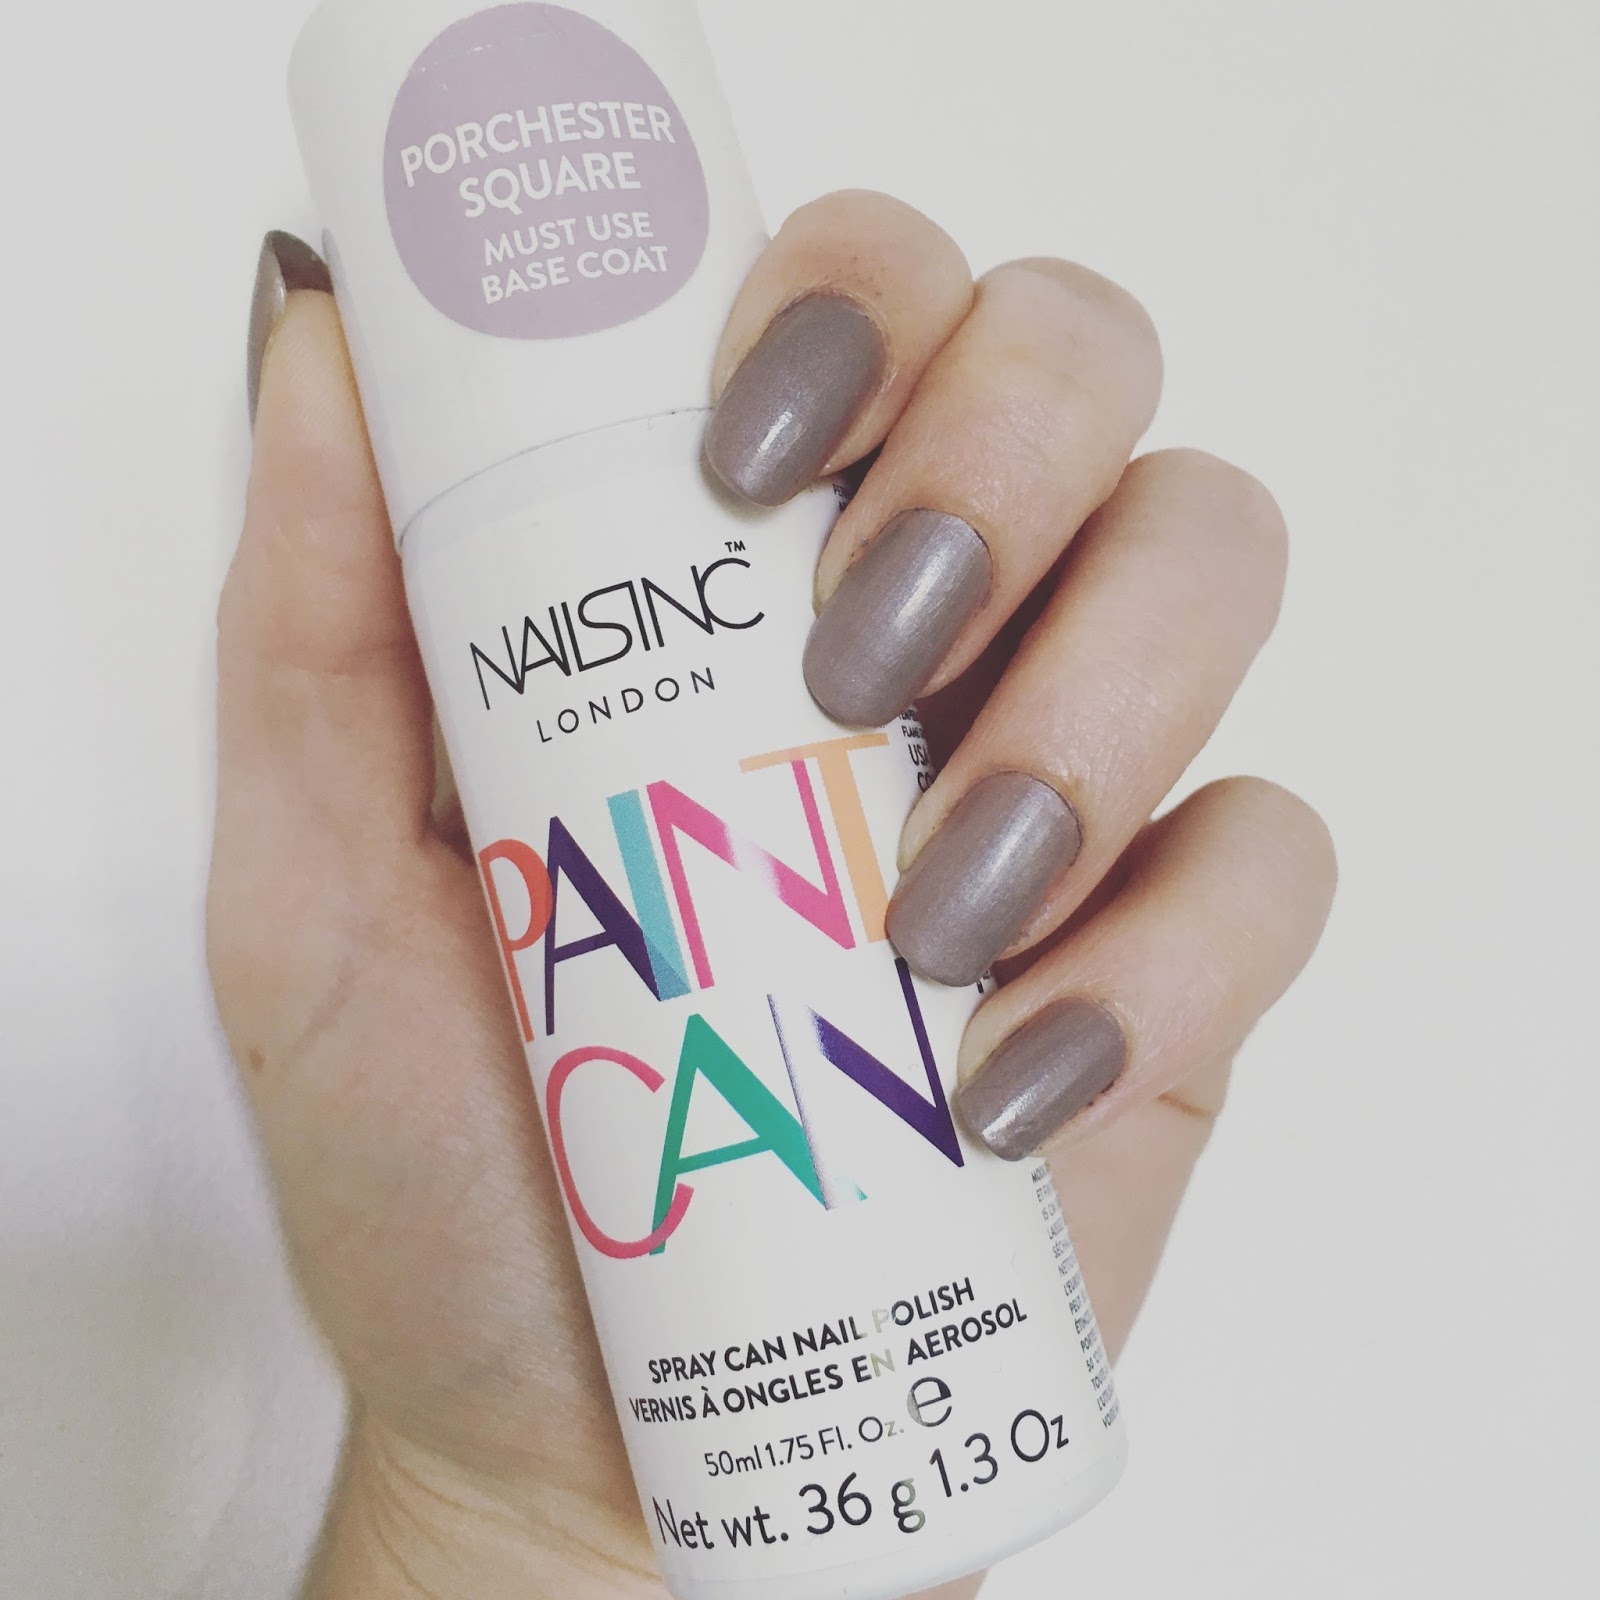 Nails Inc Paint Can Review - SmashleighJayne